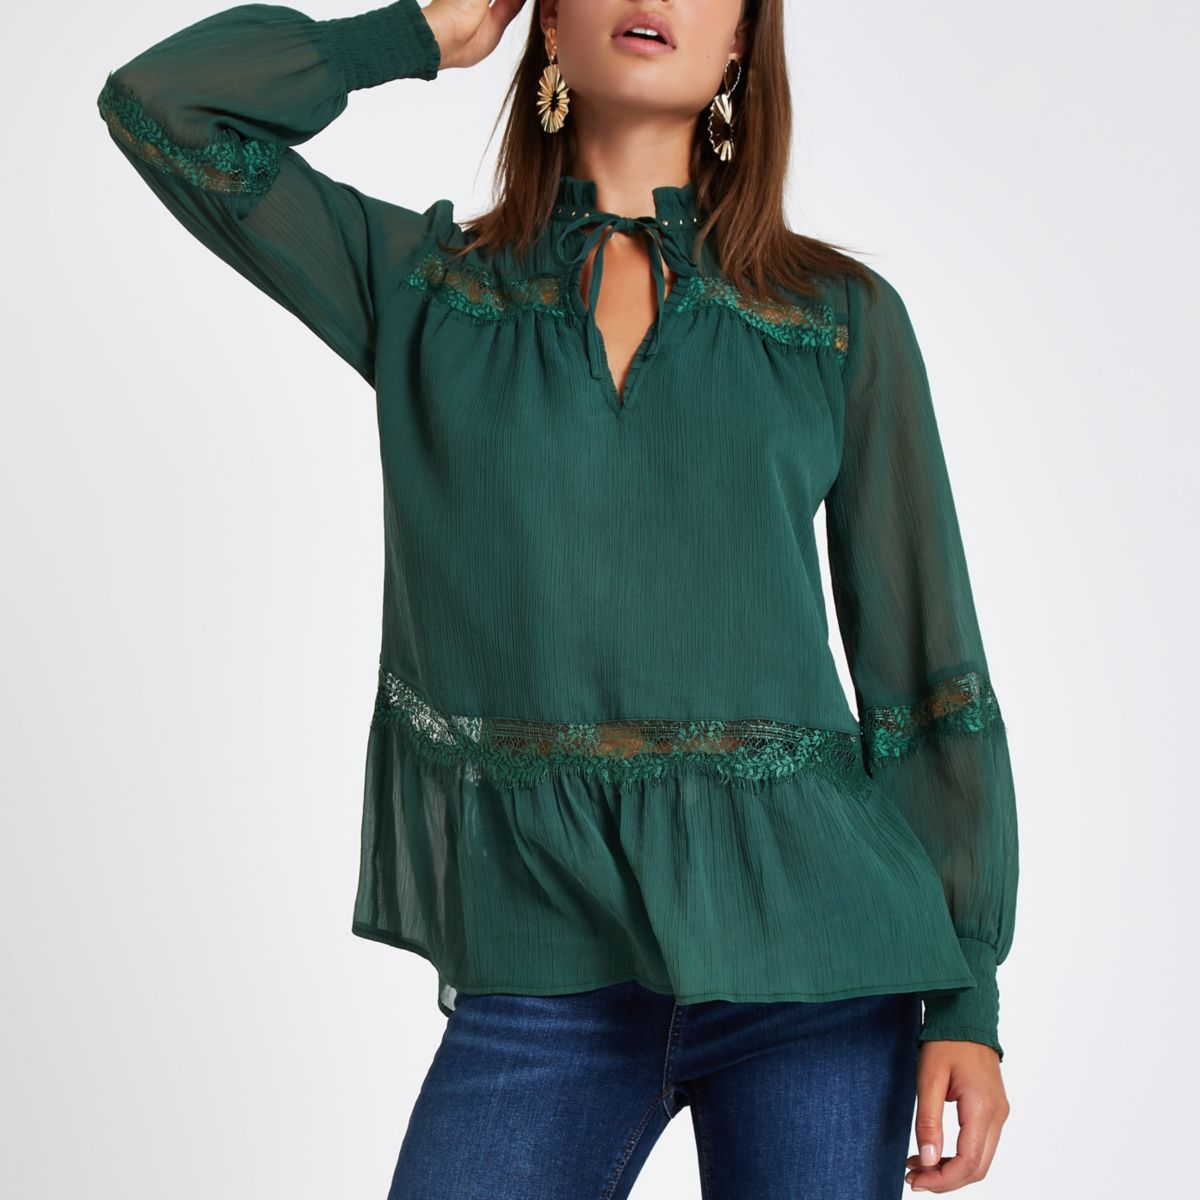 Green stud lace trim blouse